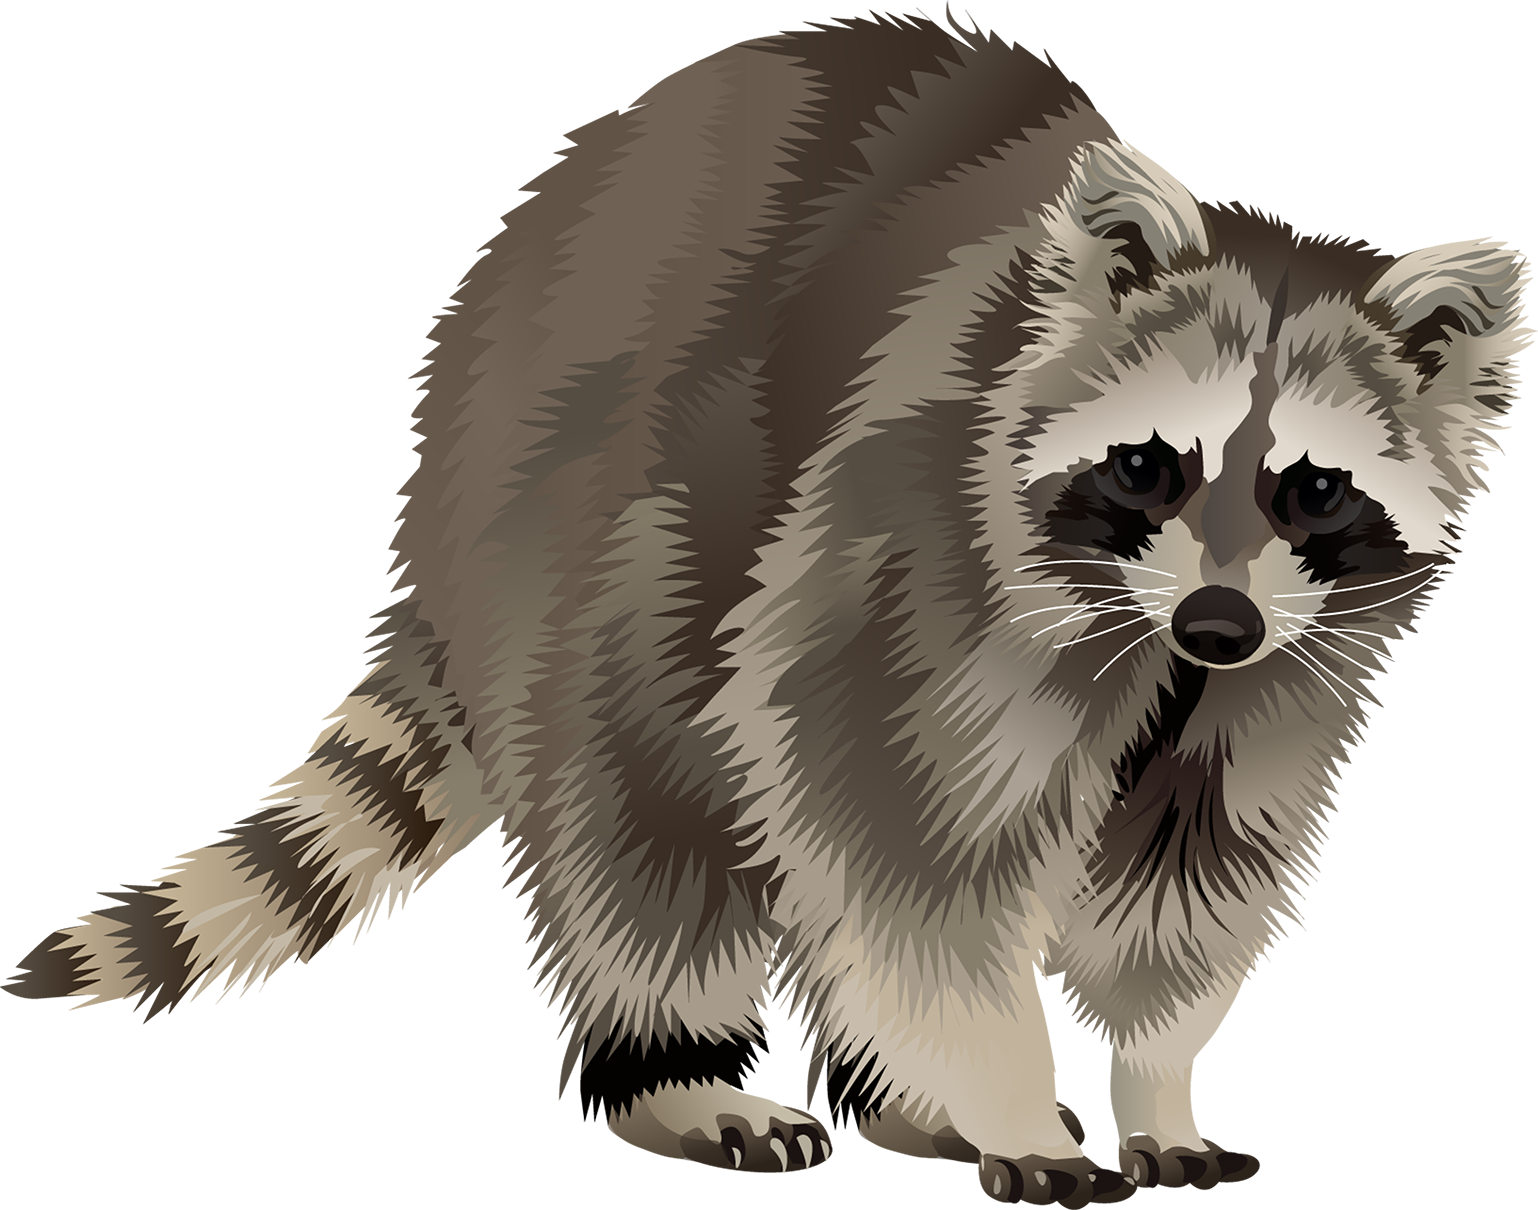 Raccoon T-Shirt - Vibrant Vector